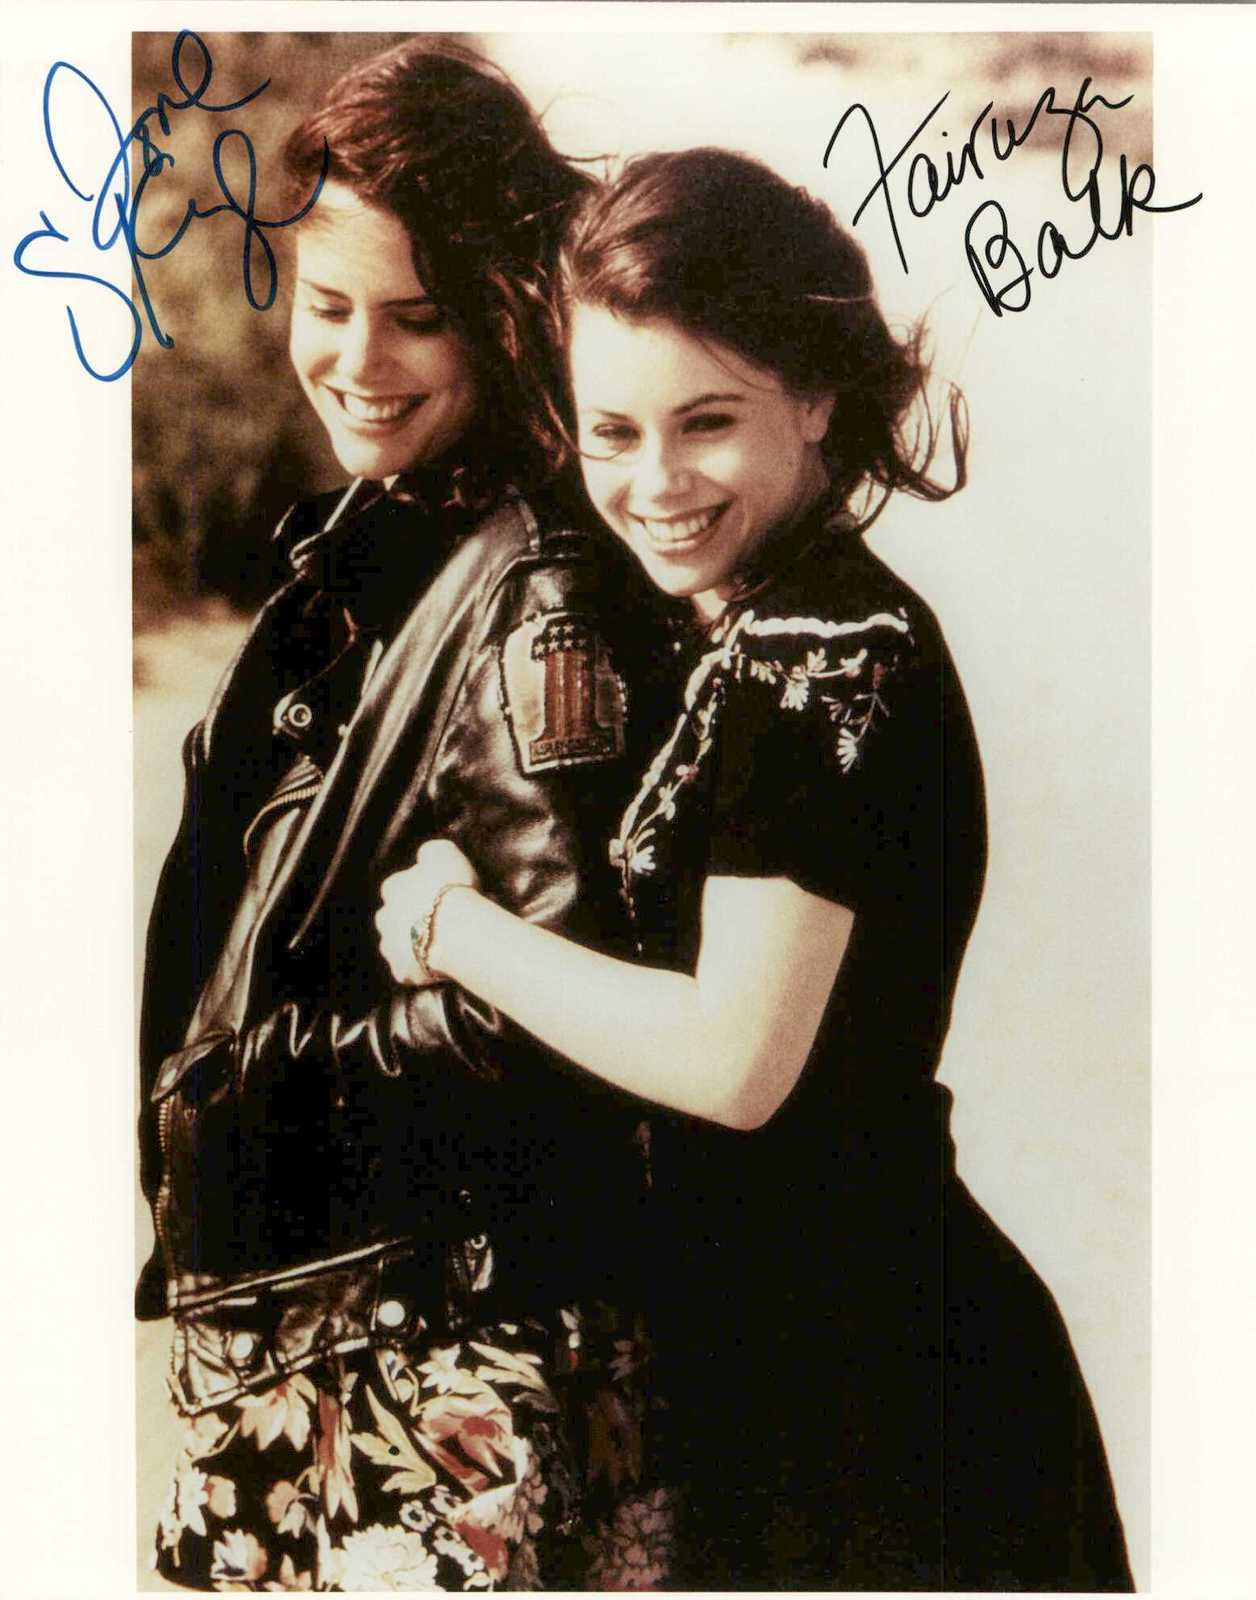 Primary image for Ione Skye & Fairuza Balk Signed Autographed Glossy 8x10 Photo